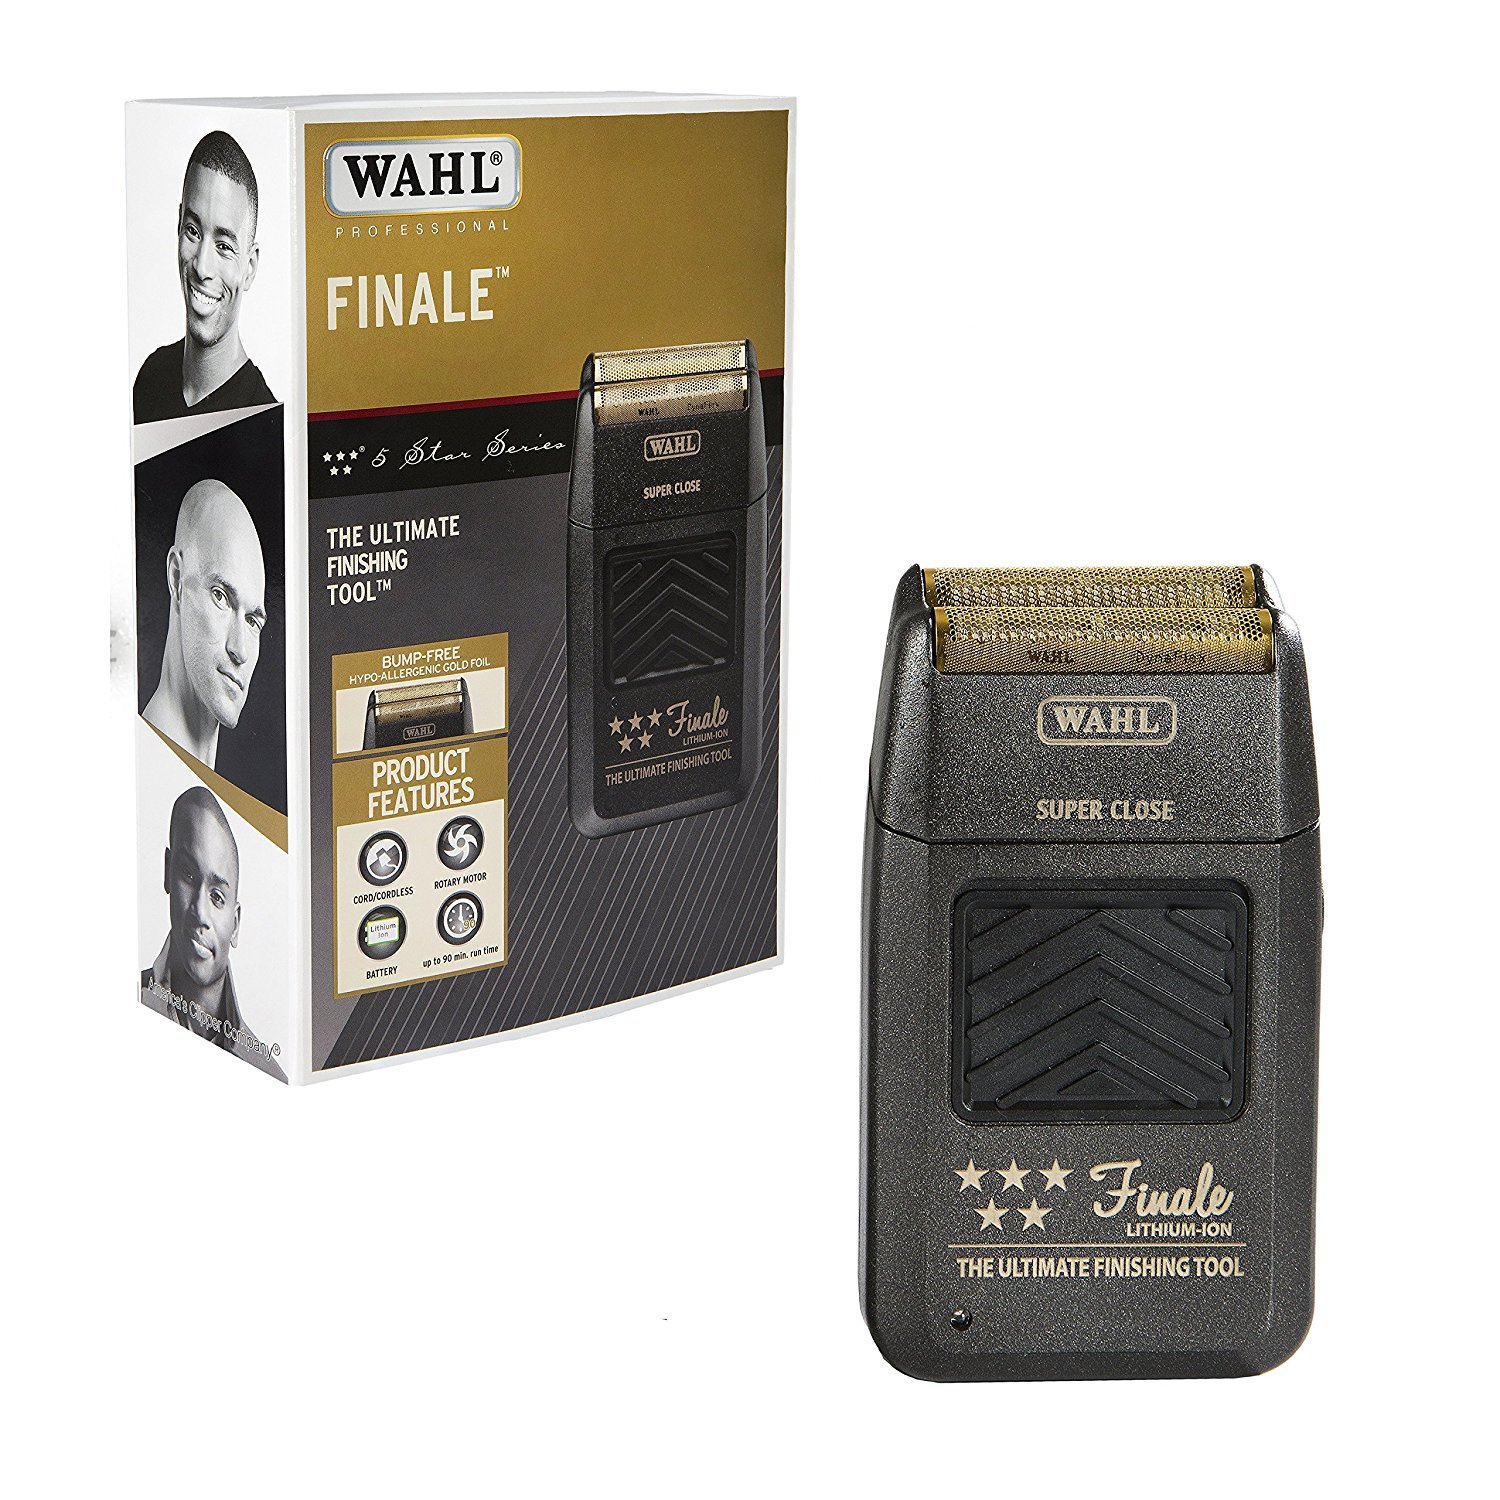 【予約受付中】 Wahl Professional 5 Great Star Professional Size Series Finale Finishing Tool #8164 - Great for Professional Stylists and Barbers - Super Close - Black (並行輸入品) One Size One Color B07HLTF94P, 御調郡:a4014a58 --- arianechie.dominiotemporario.com